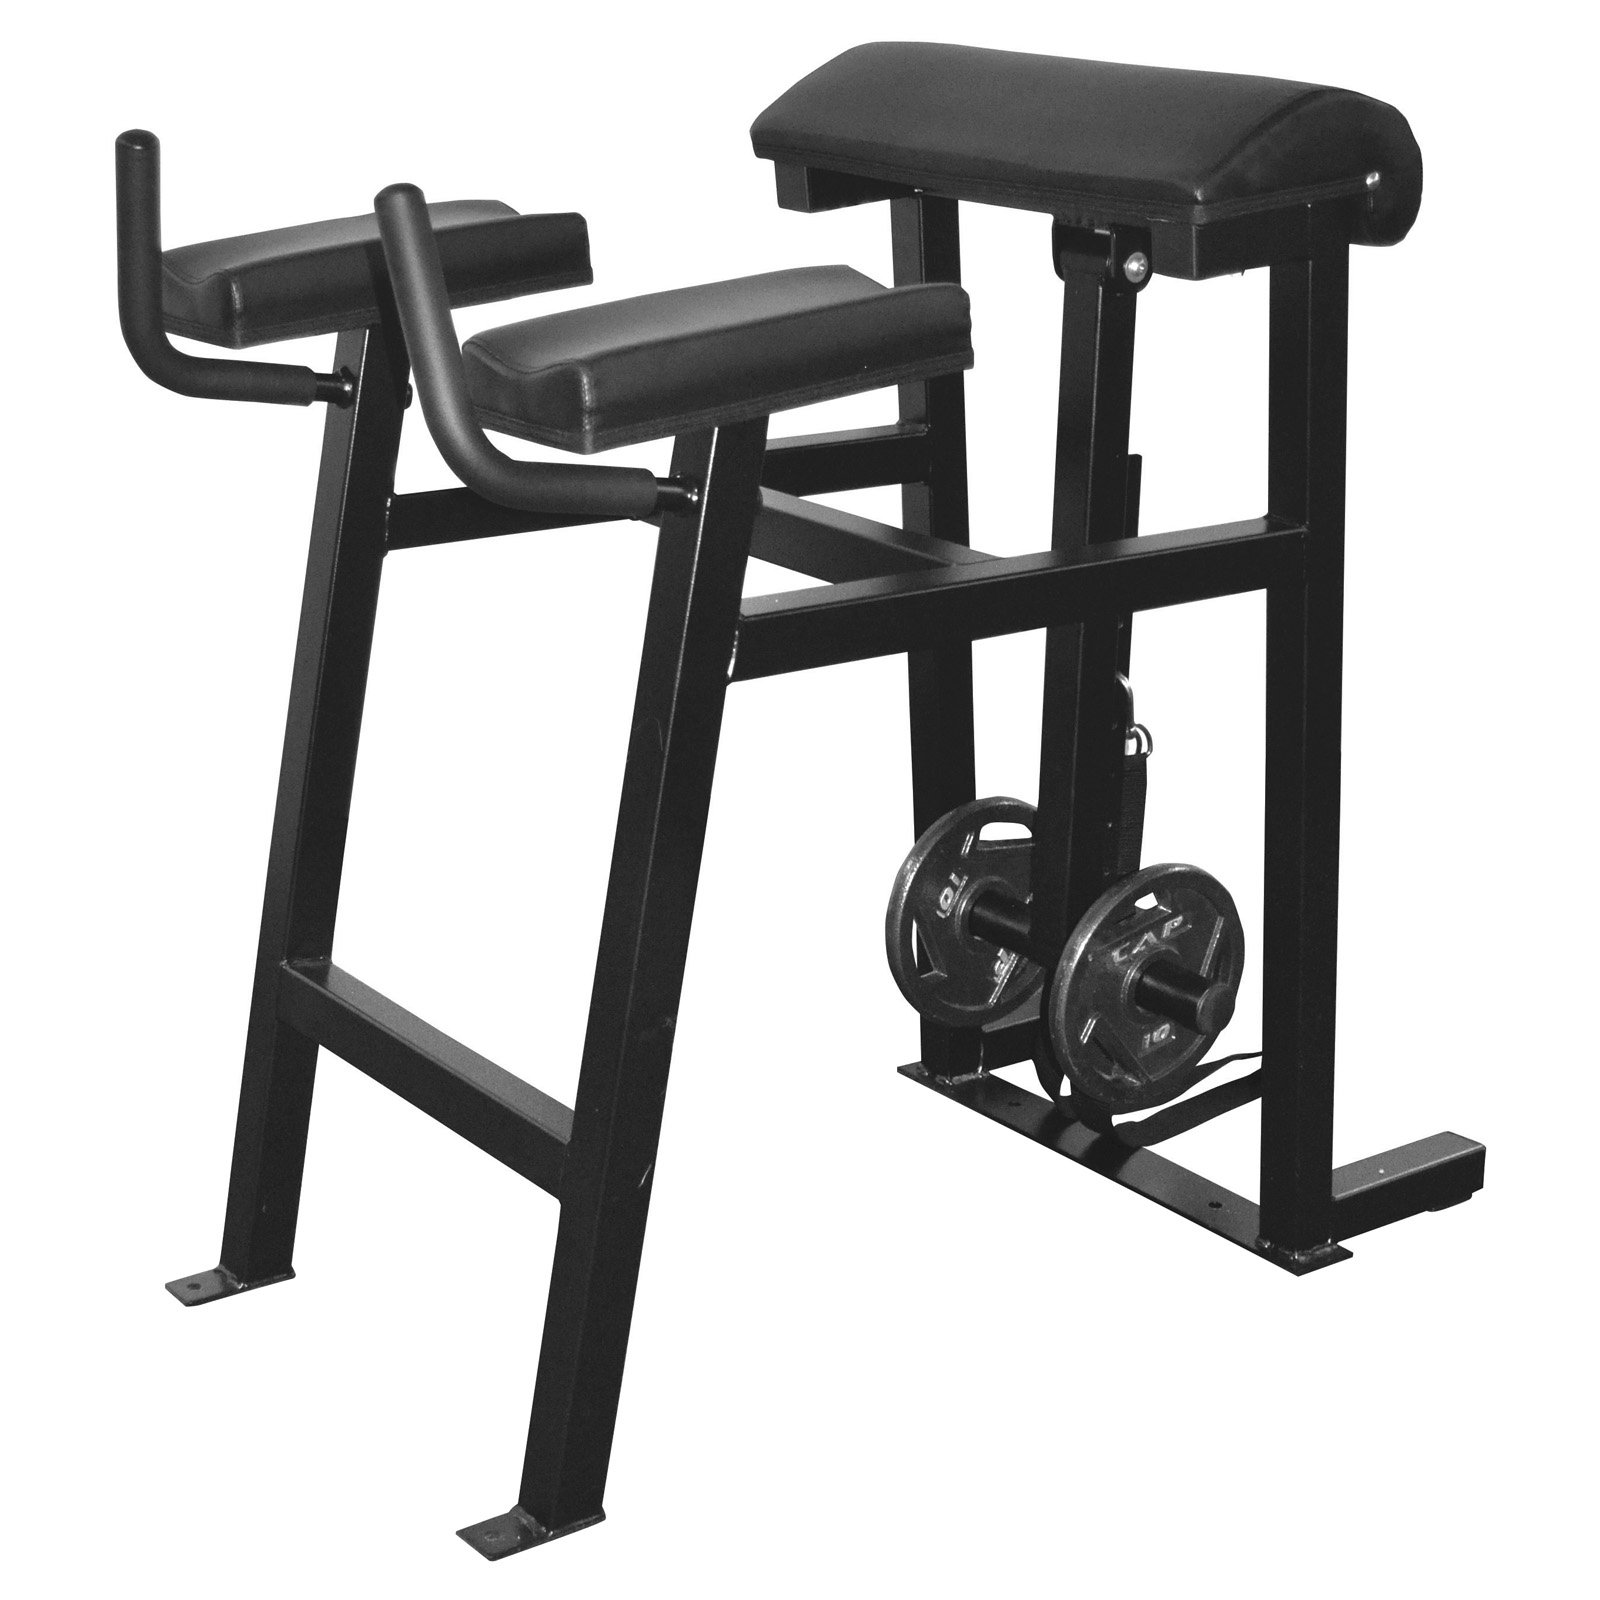 Power tower exercise equipment workout home gym squat rack